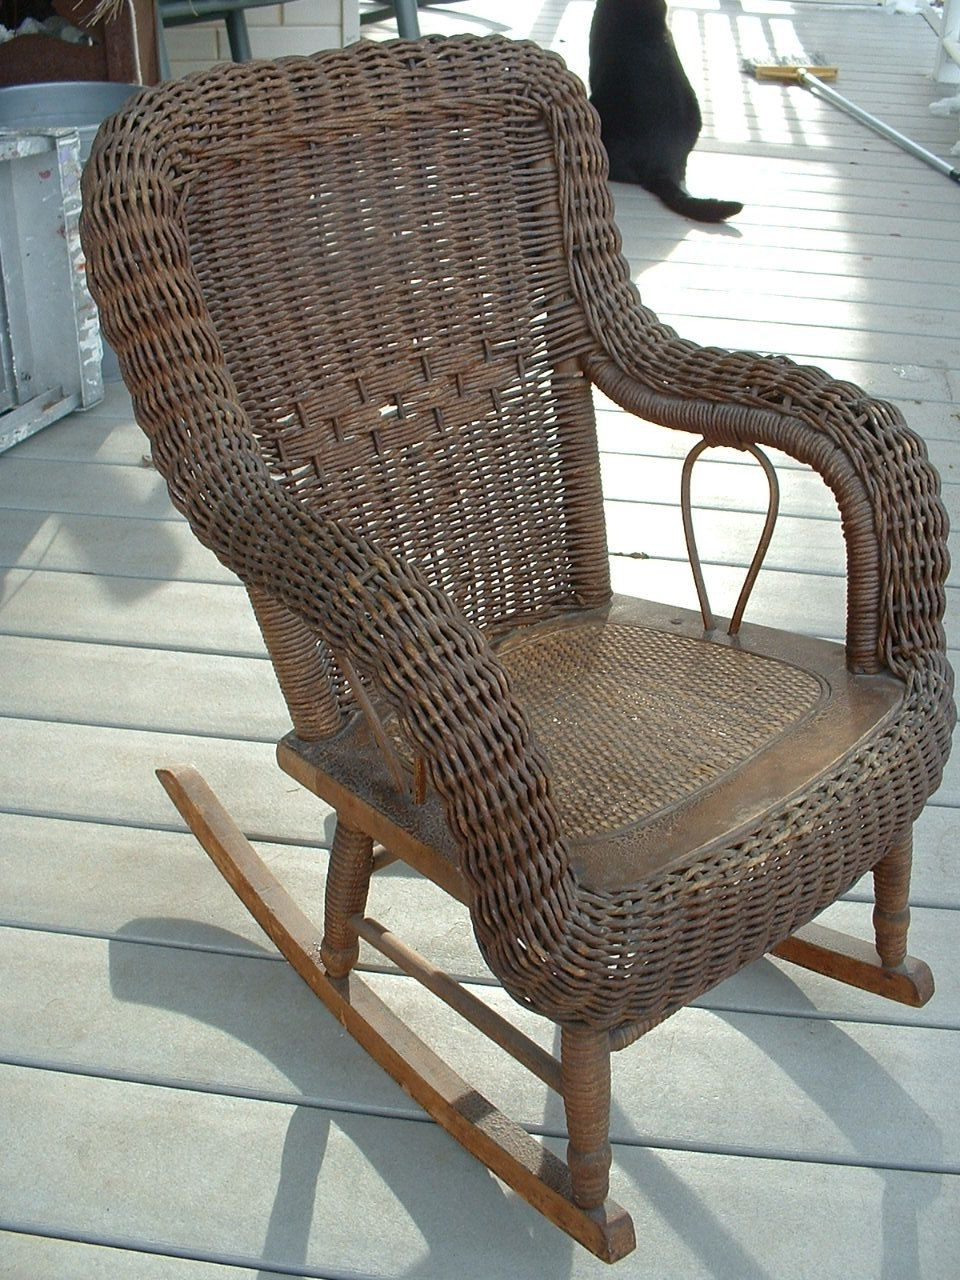 Wicker Furniture For Popular Antique Wicker Rocking Chairs With Springs (View 12 of 15)